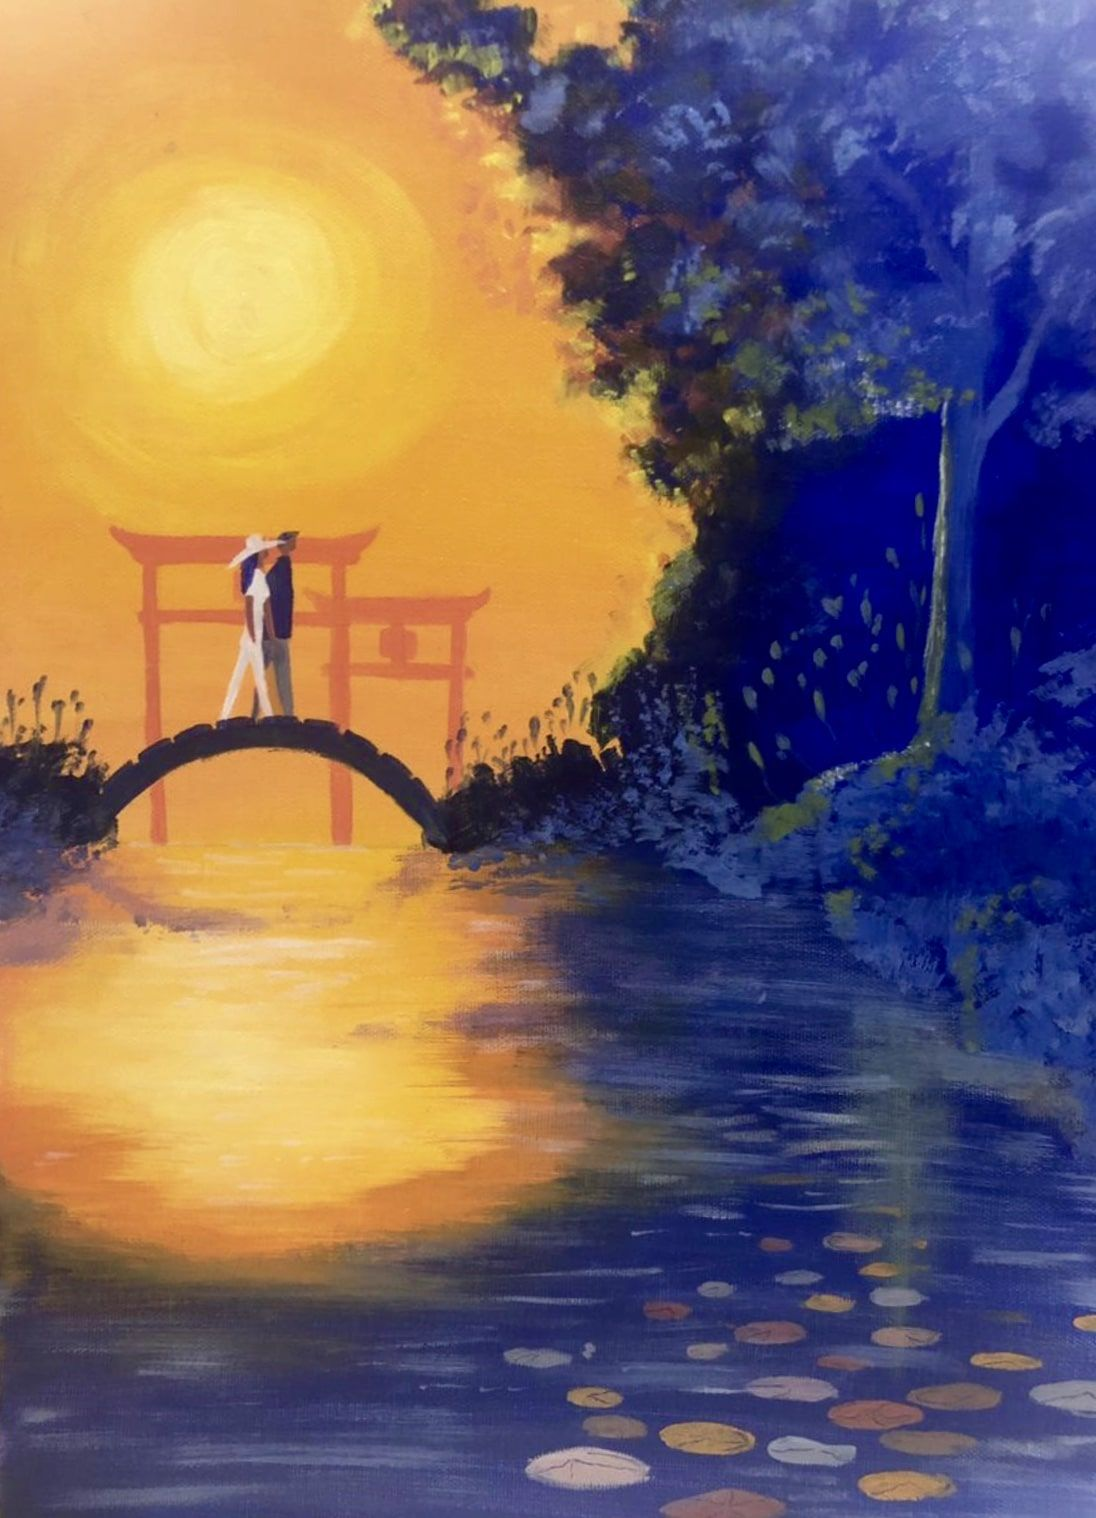 Kyoto Love Story Painting Online Painting Classes Online Painting